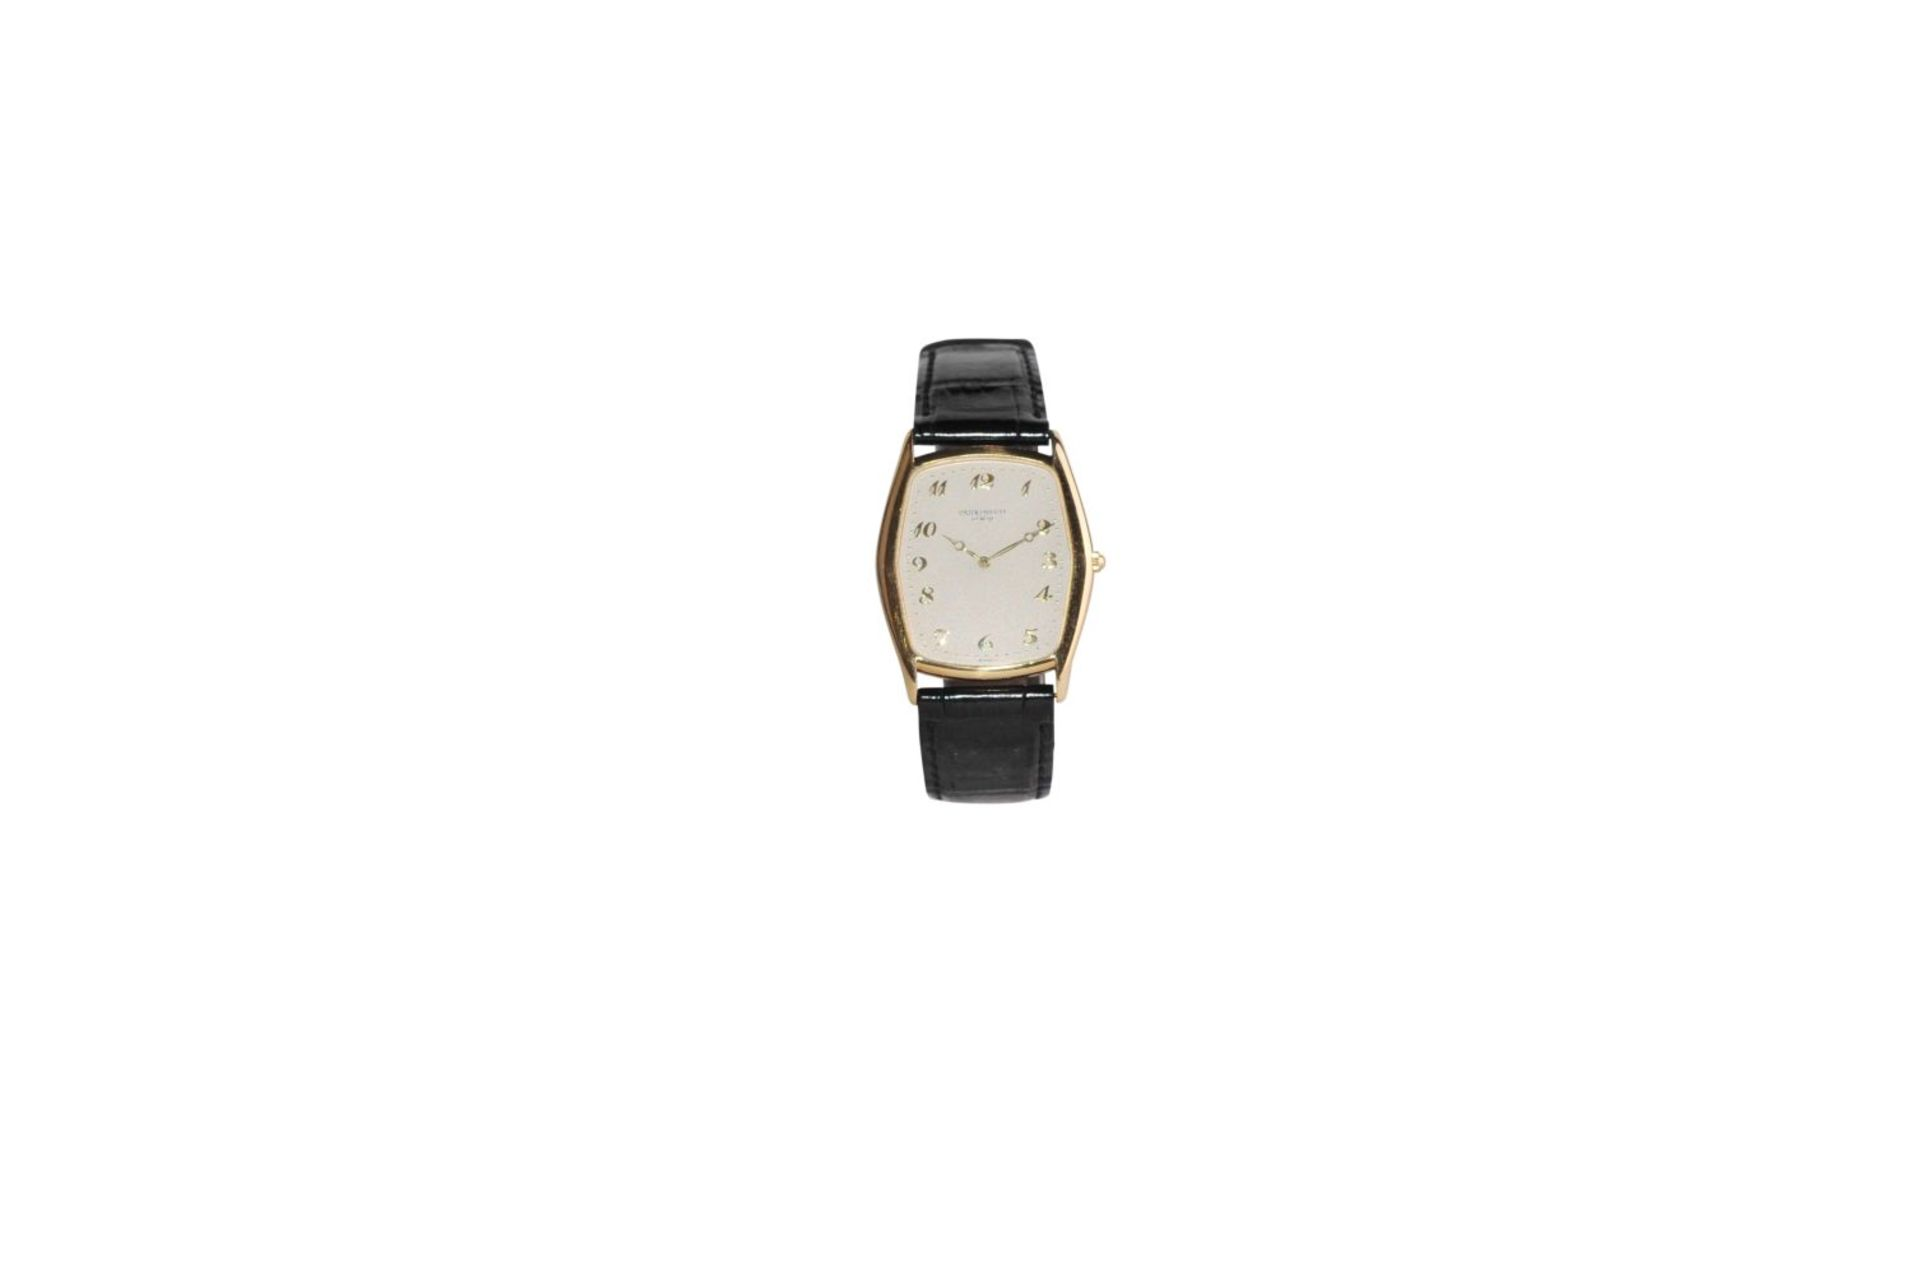 Los 17 - Patek Philippe Gondolo Ref. 384231 x 29 mm 750/000 fine gold watch with leather strap, manual